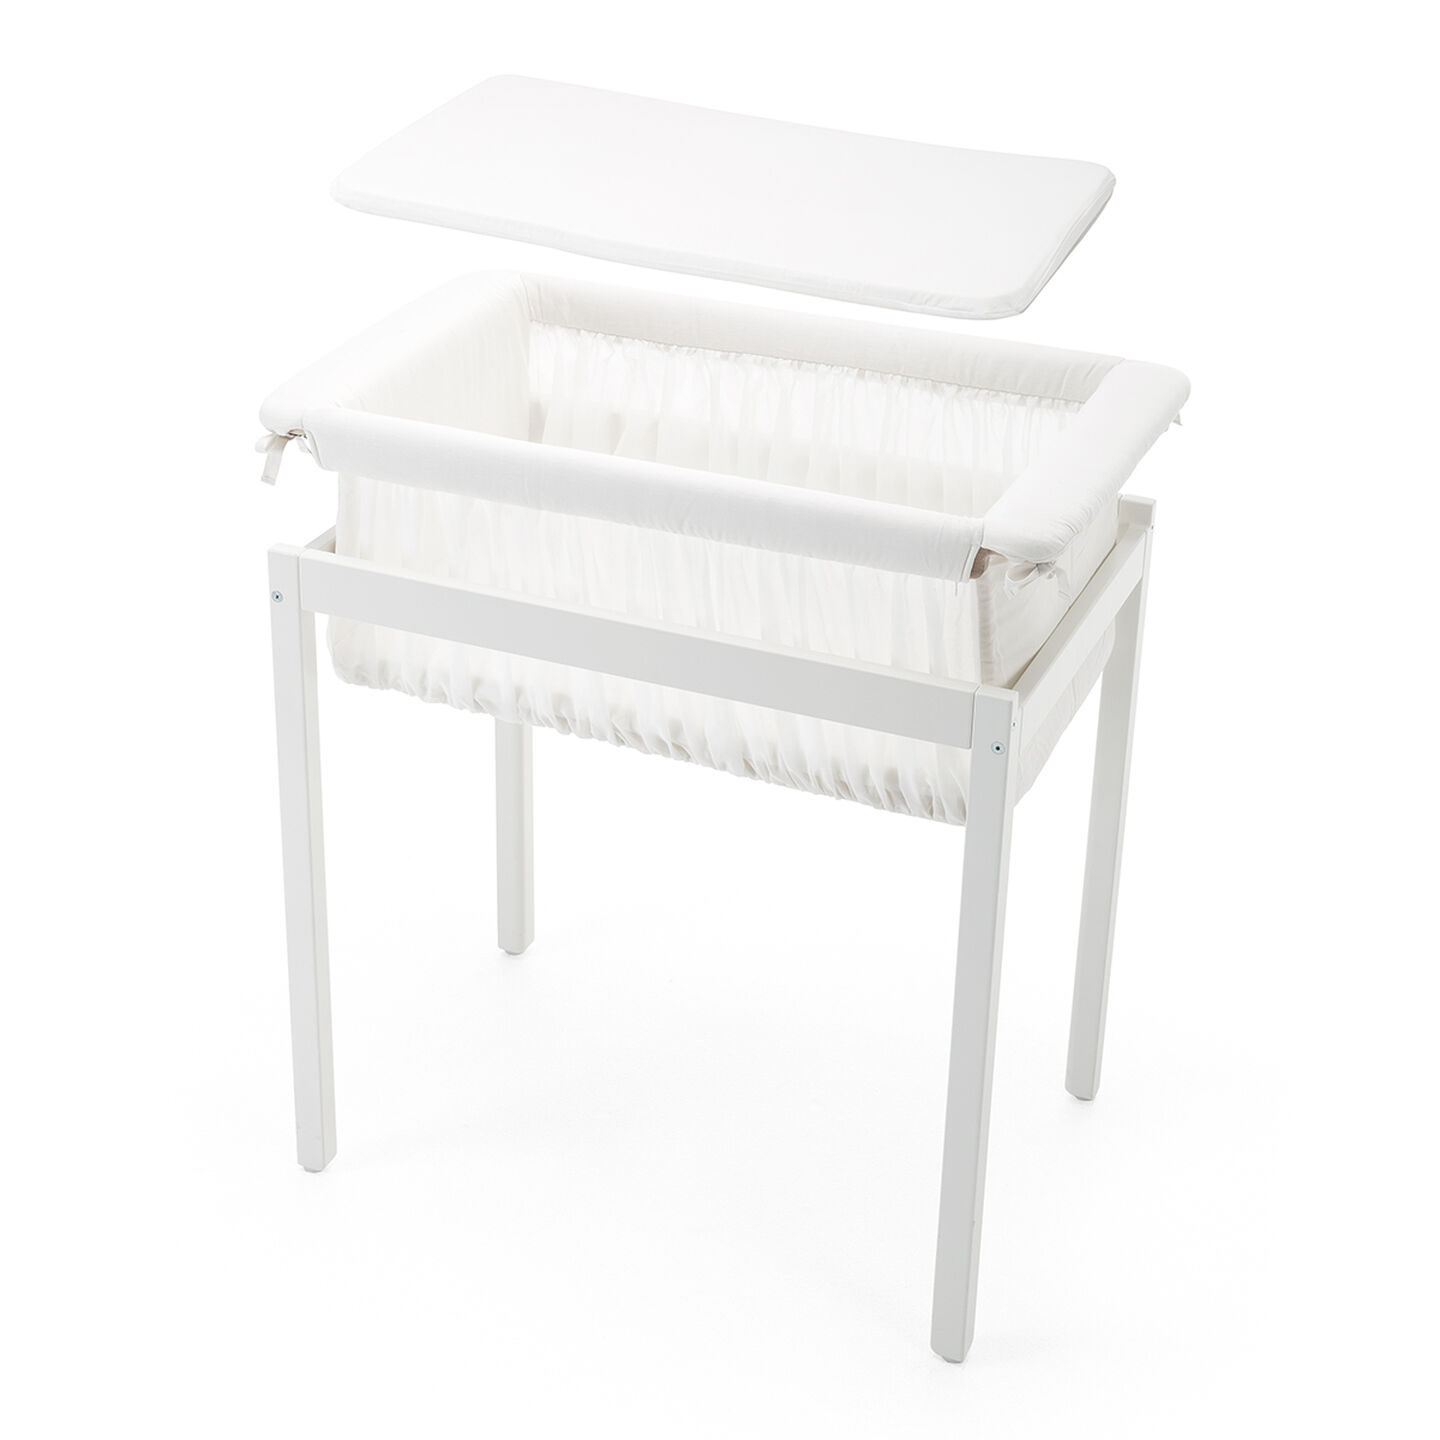 Cradle, Cradle Stand, Mattress, White